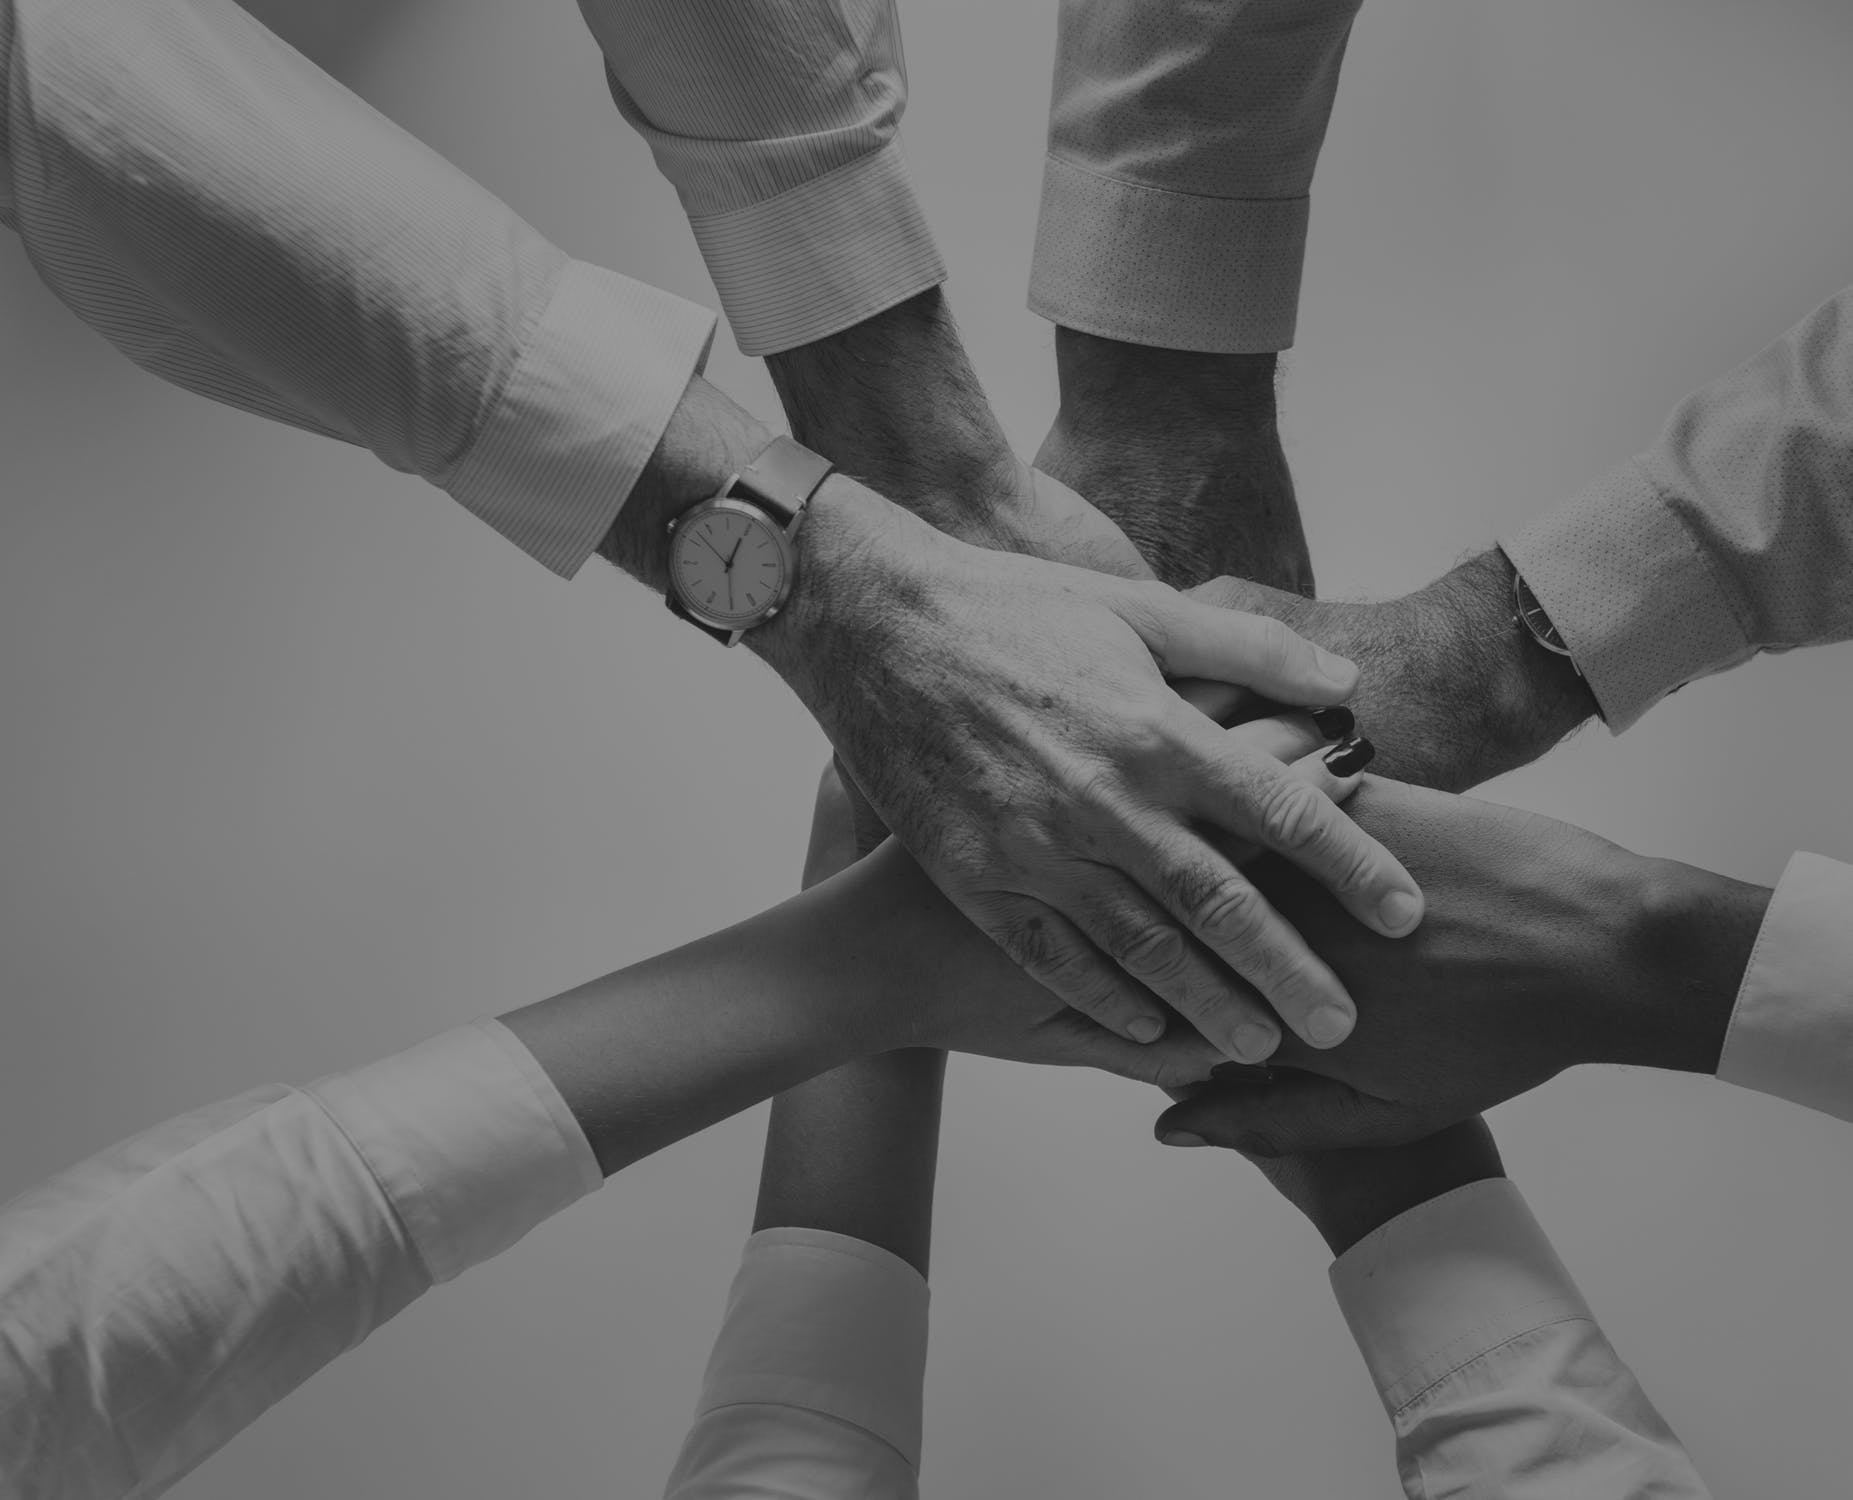 A group of individuals coming together to hold hands.